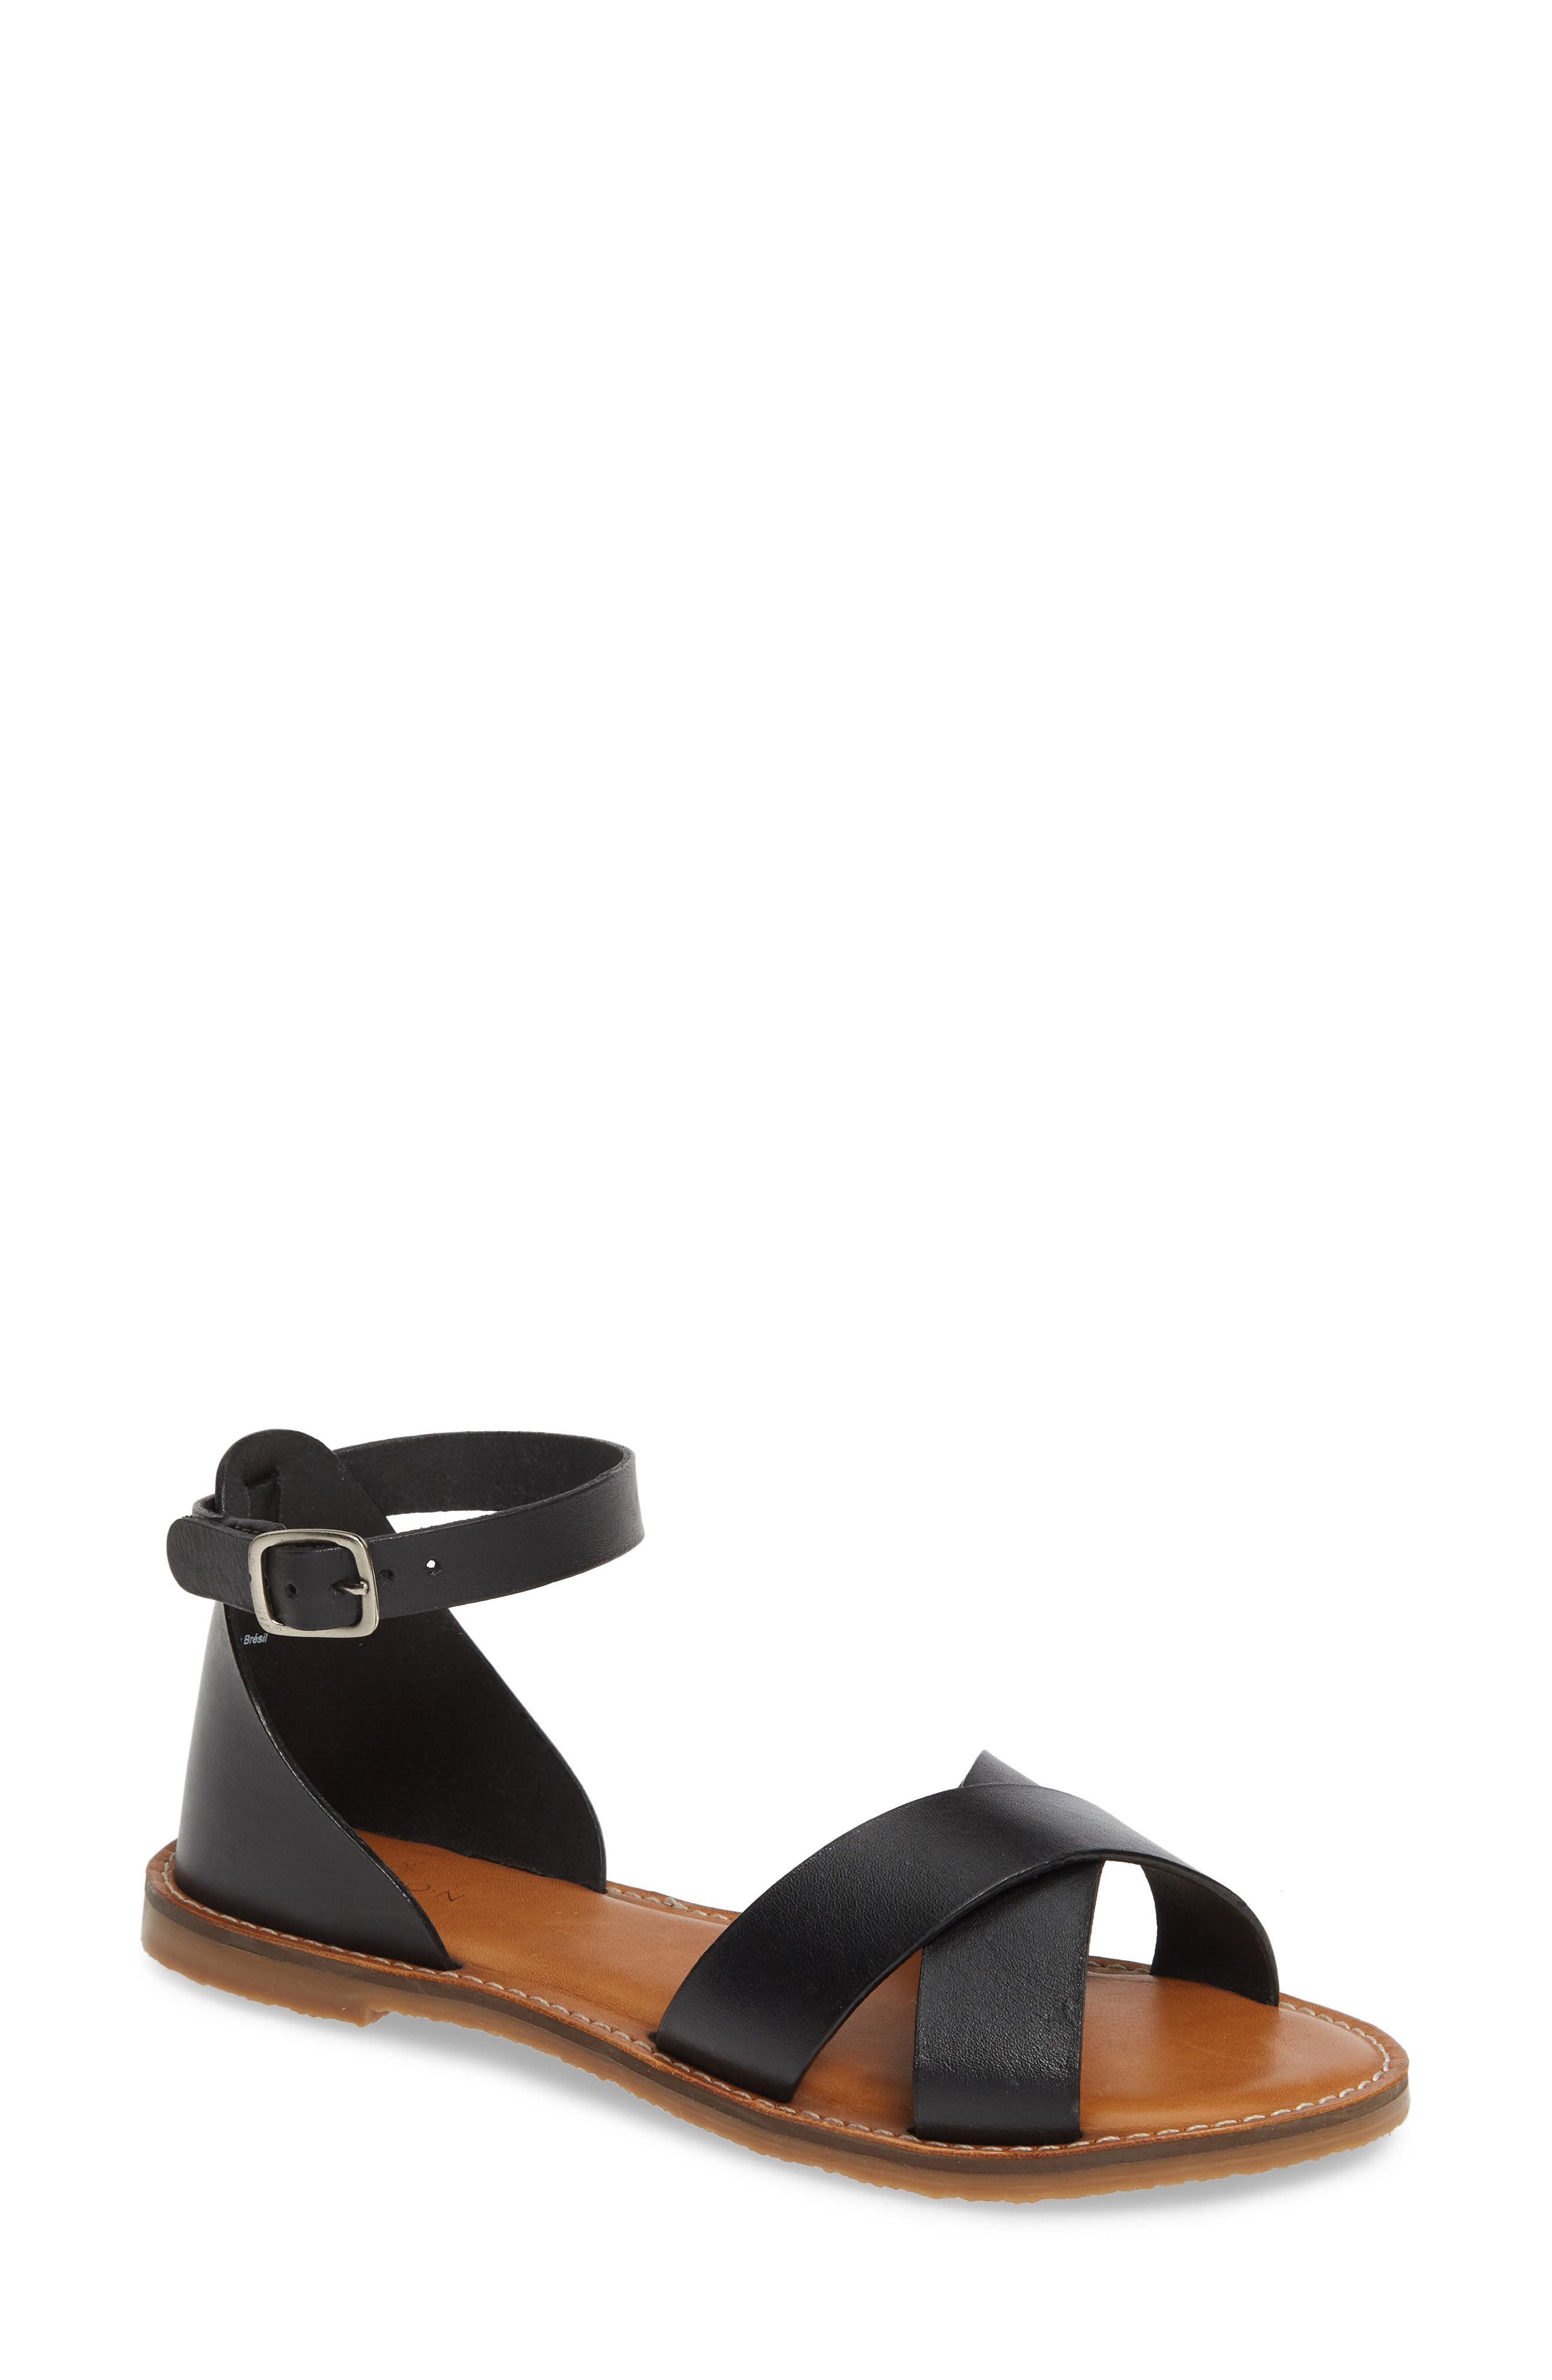 CASLON<SUP>®</SUP>, Oliver Sandal, Main thumbnail 1, color, BLACK LEATHER